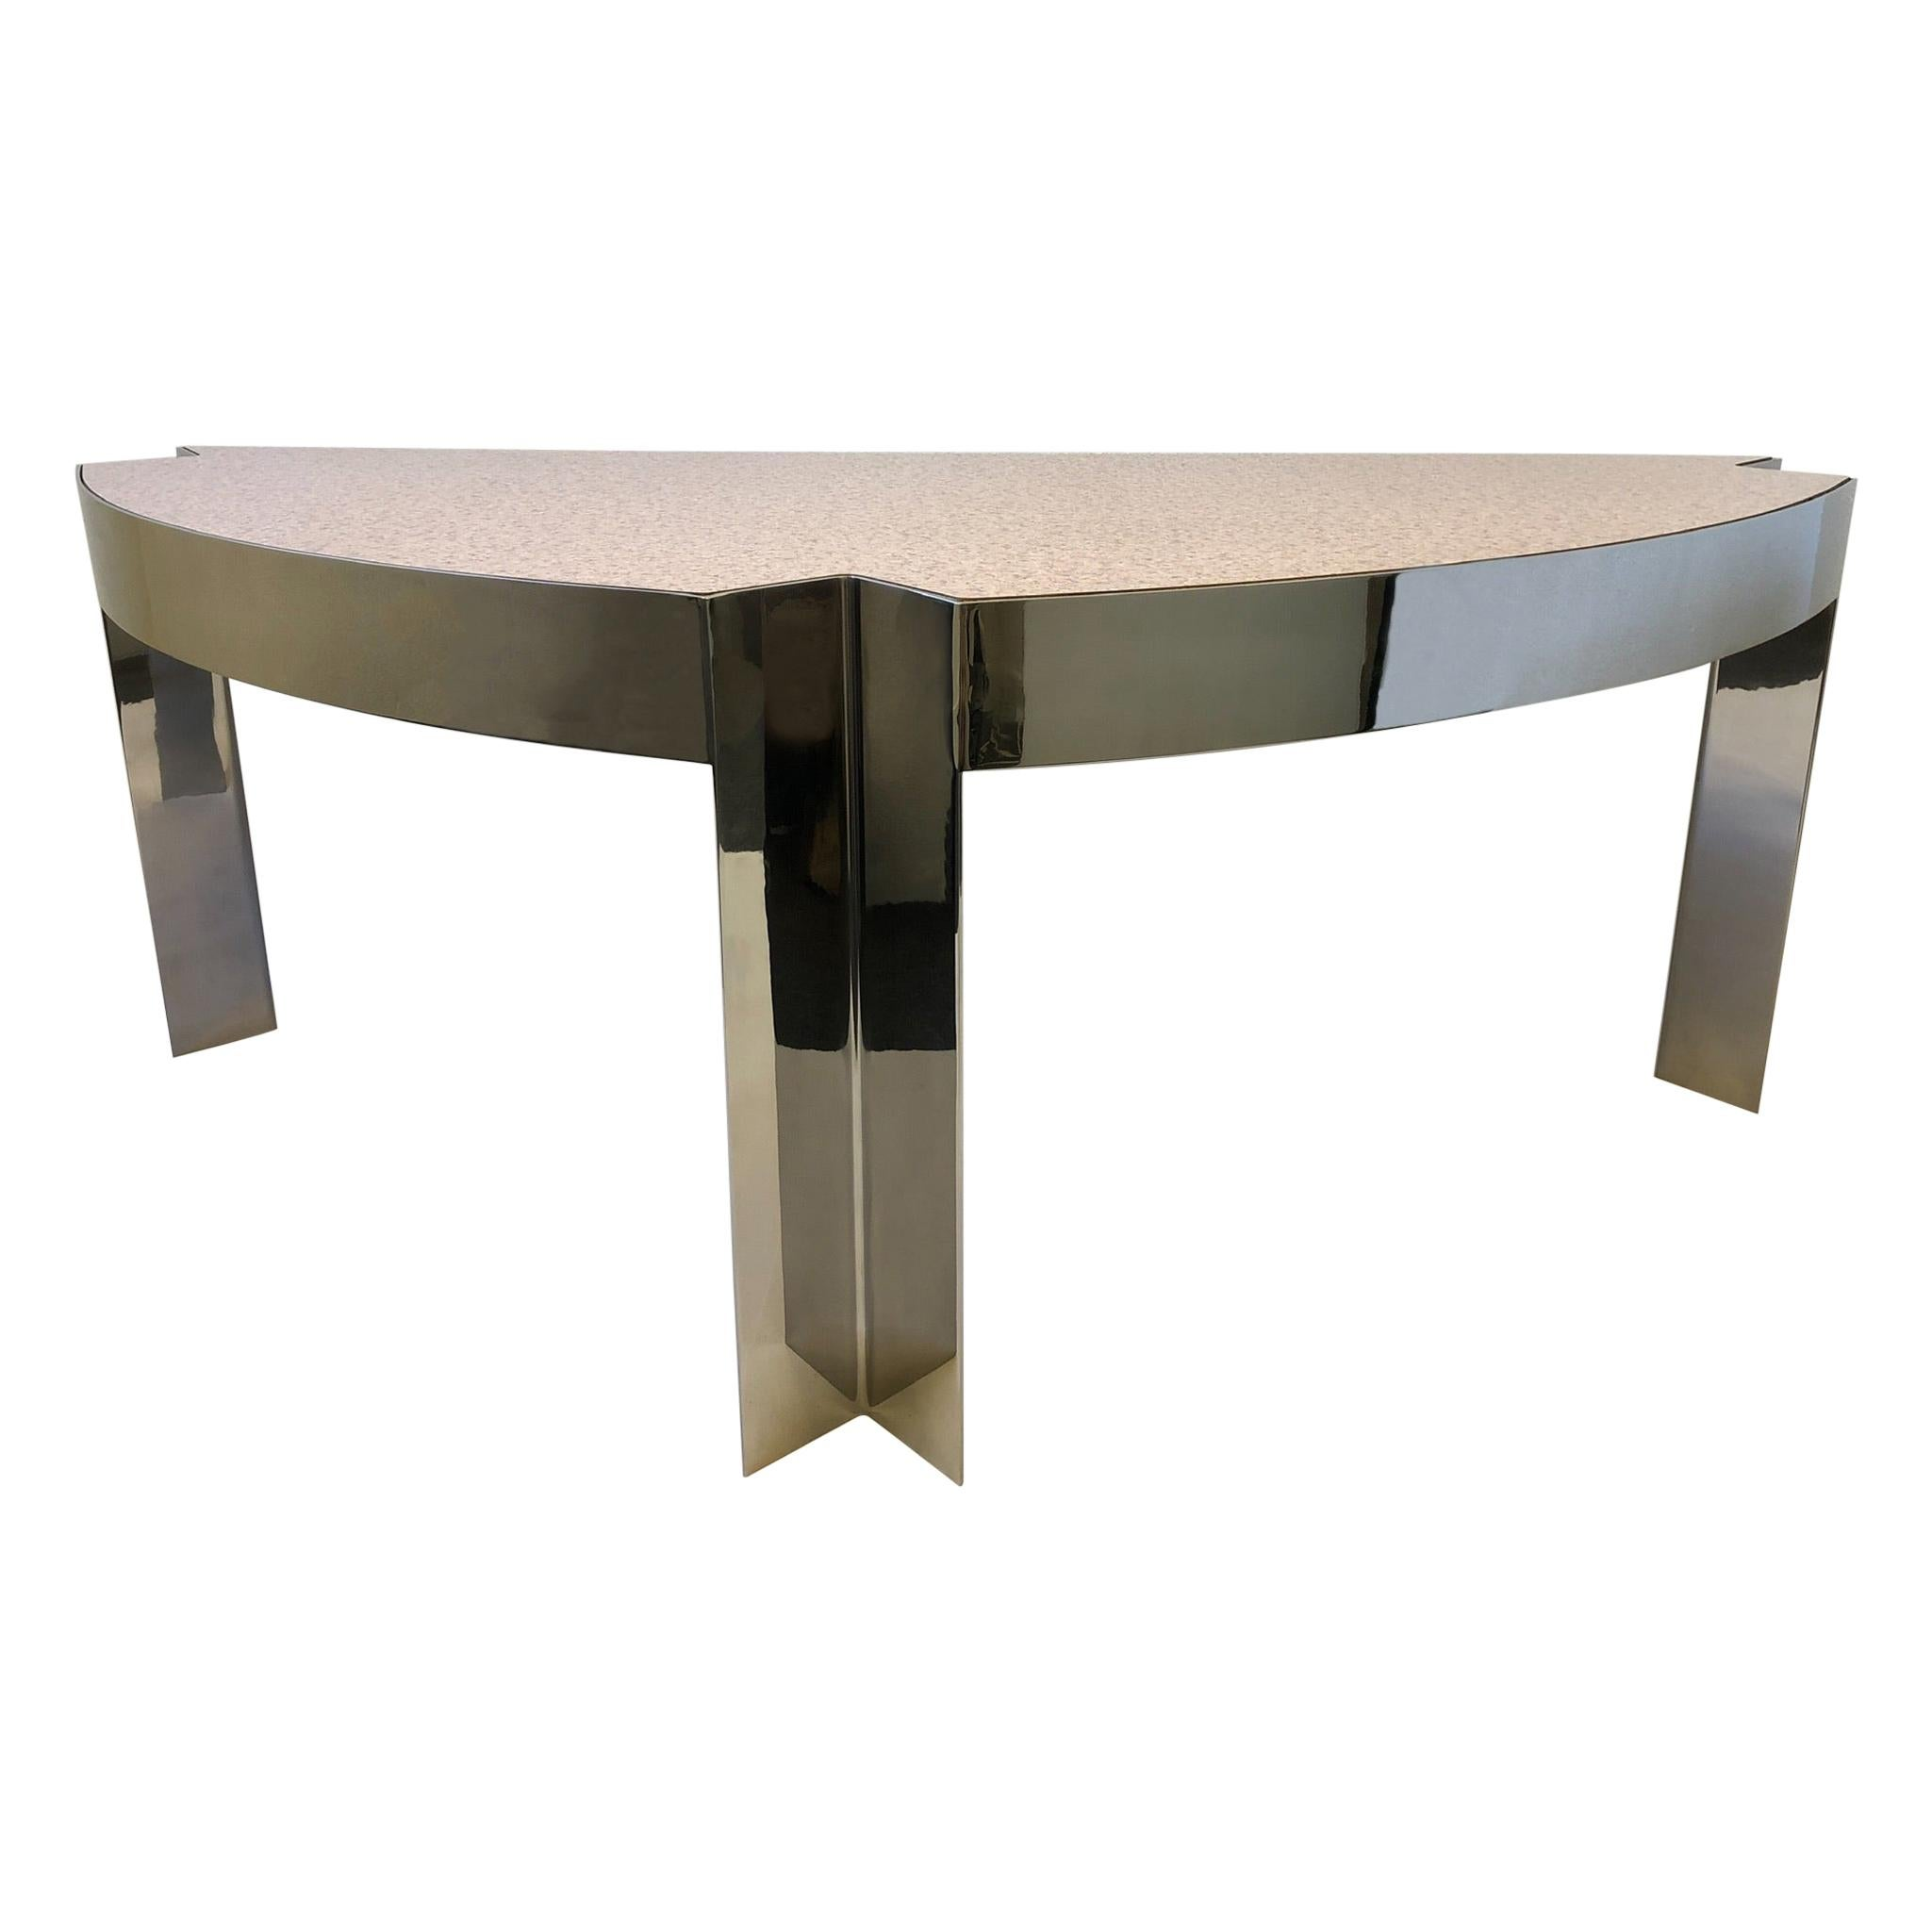 Polish Aluminum and Pink Granite Formica Desk by Leon Rosen for Pace Collection